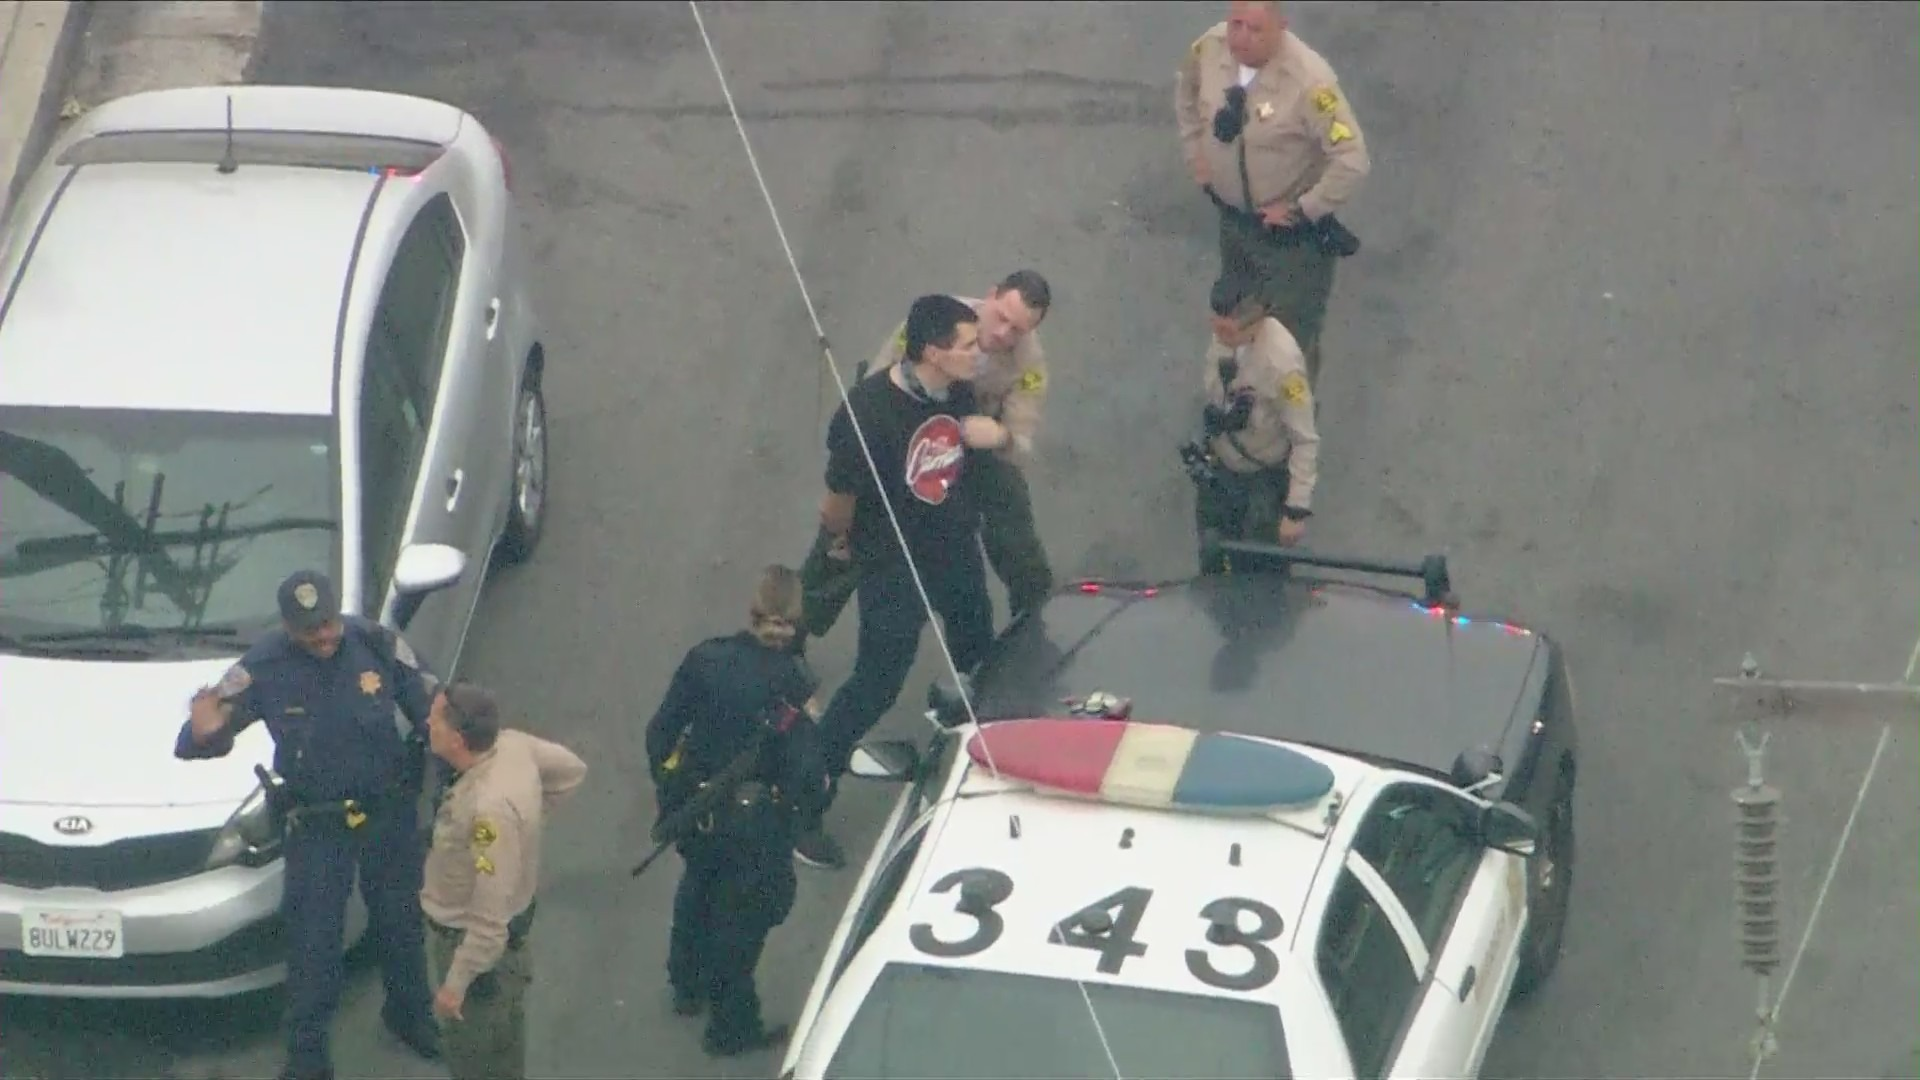 One person was taken into custody when a pursuit came to an end in Bellflower on May 11, 2021. (KTLA)